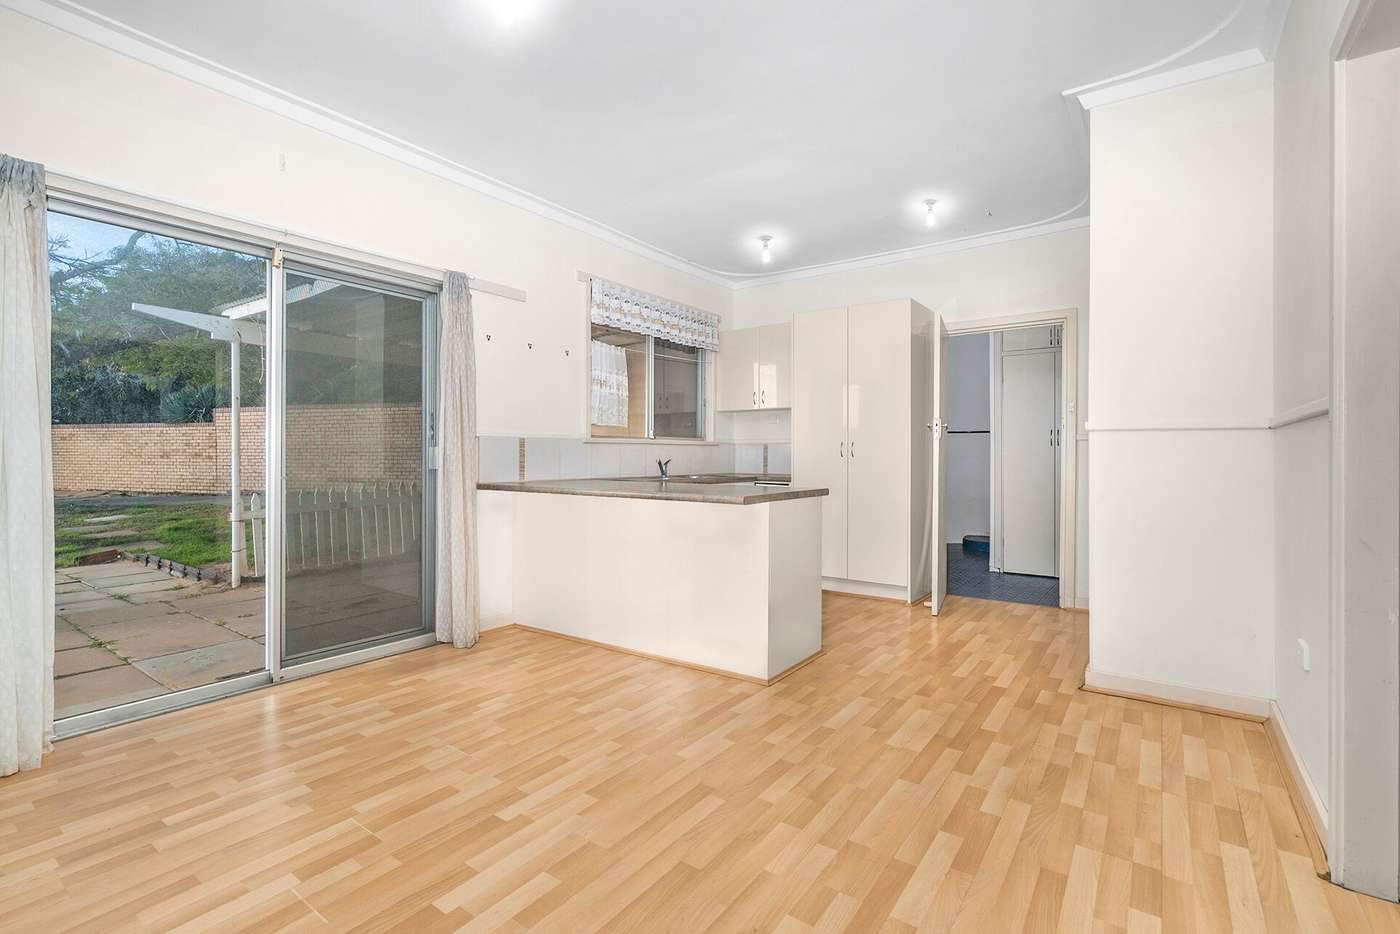 Seventh view of Homely house listing, 21 Mark Street, Beresford WA 6530